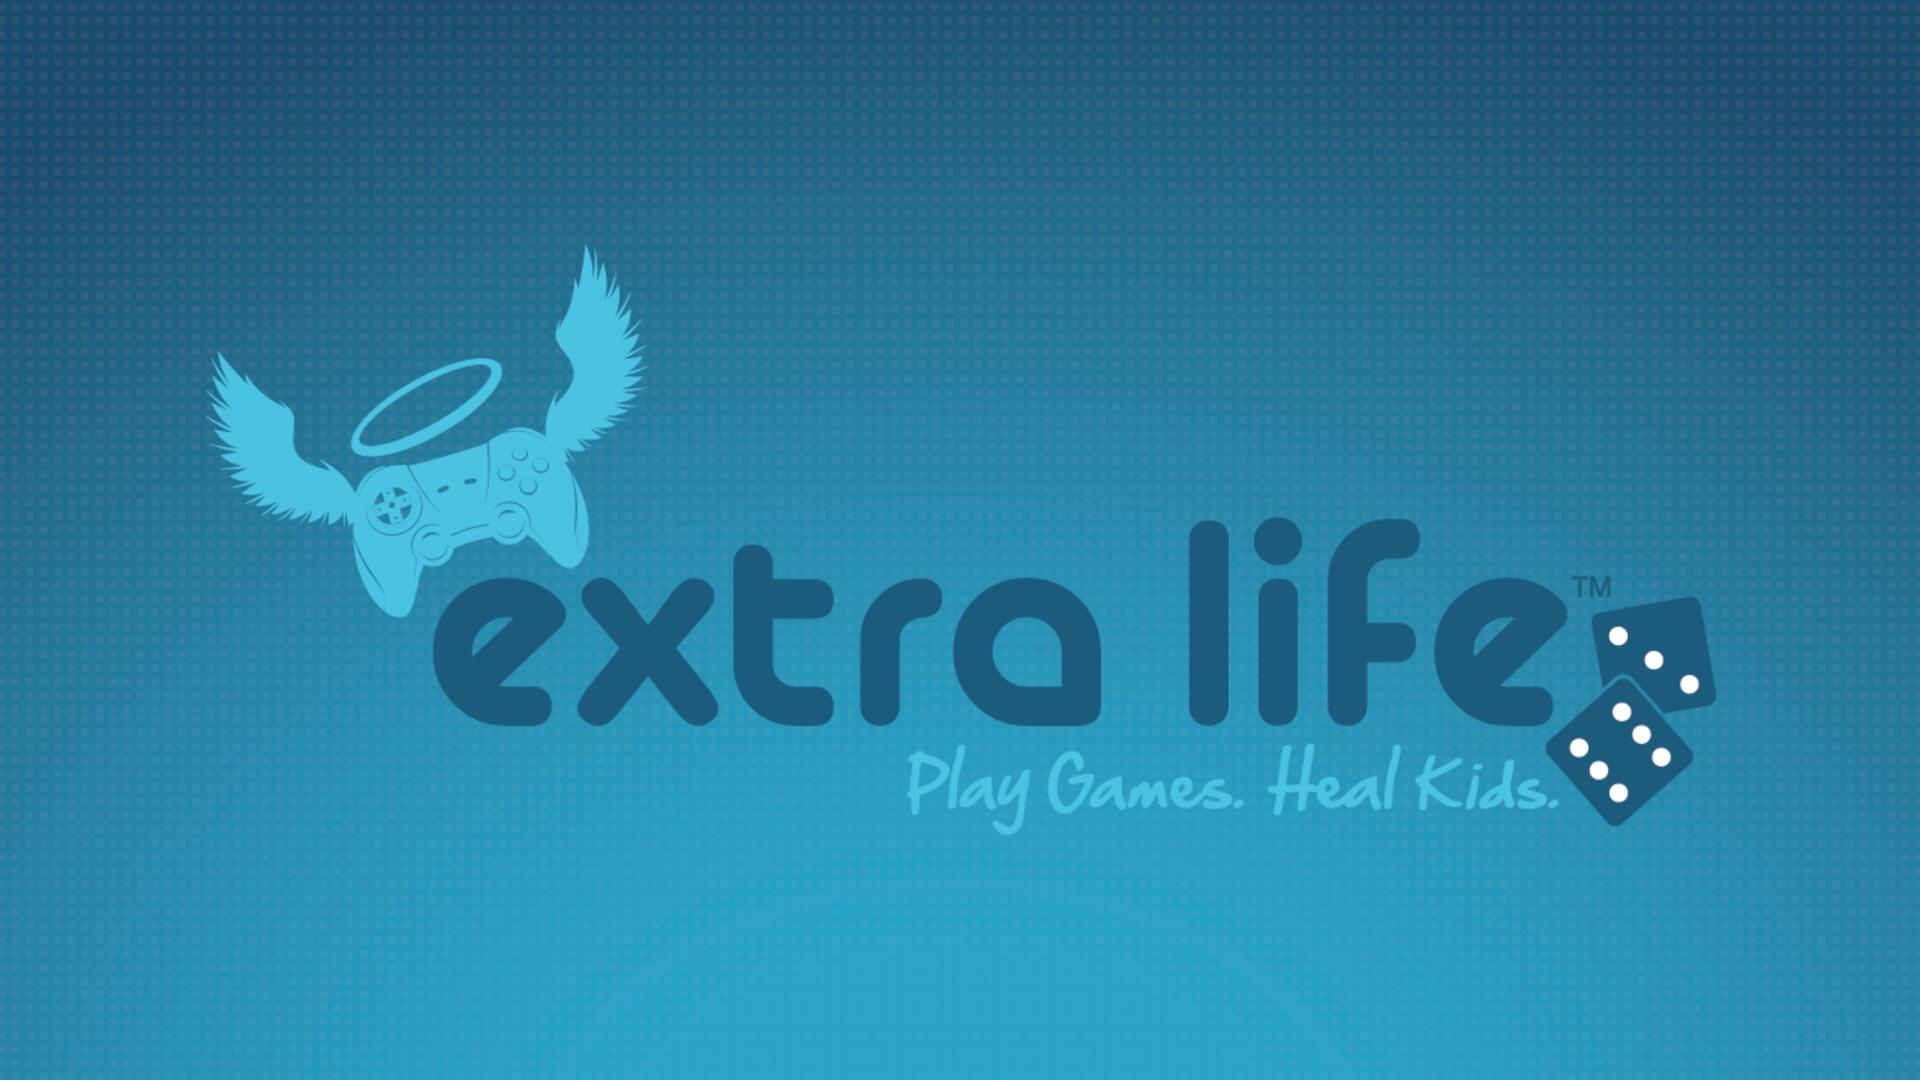 USG's Extra Life Stream Kicks Off This Weekend, with Guests and Giveaways - When and Where to Watch